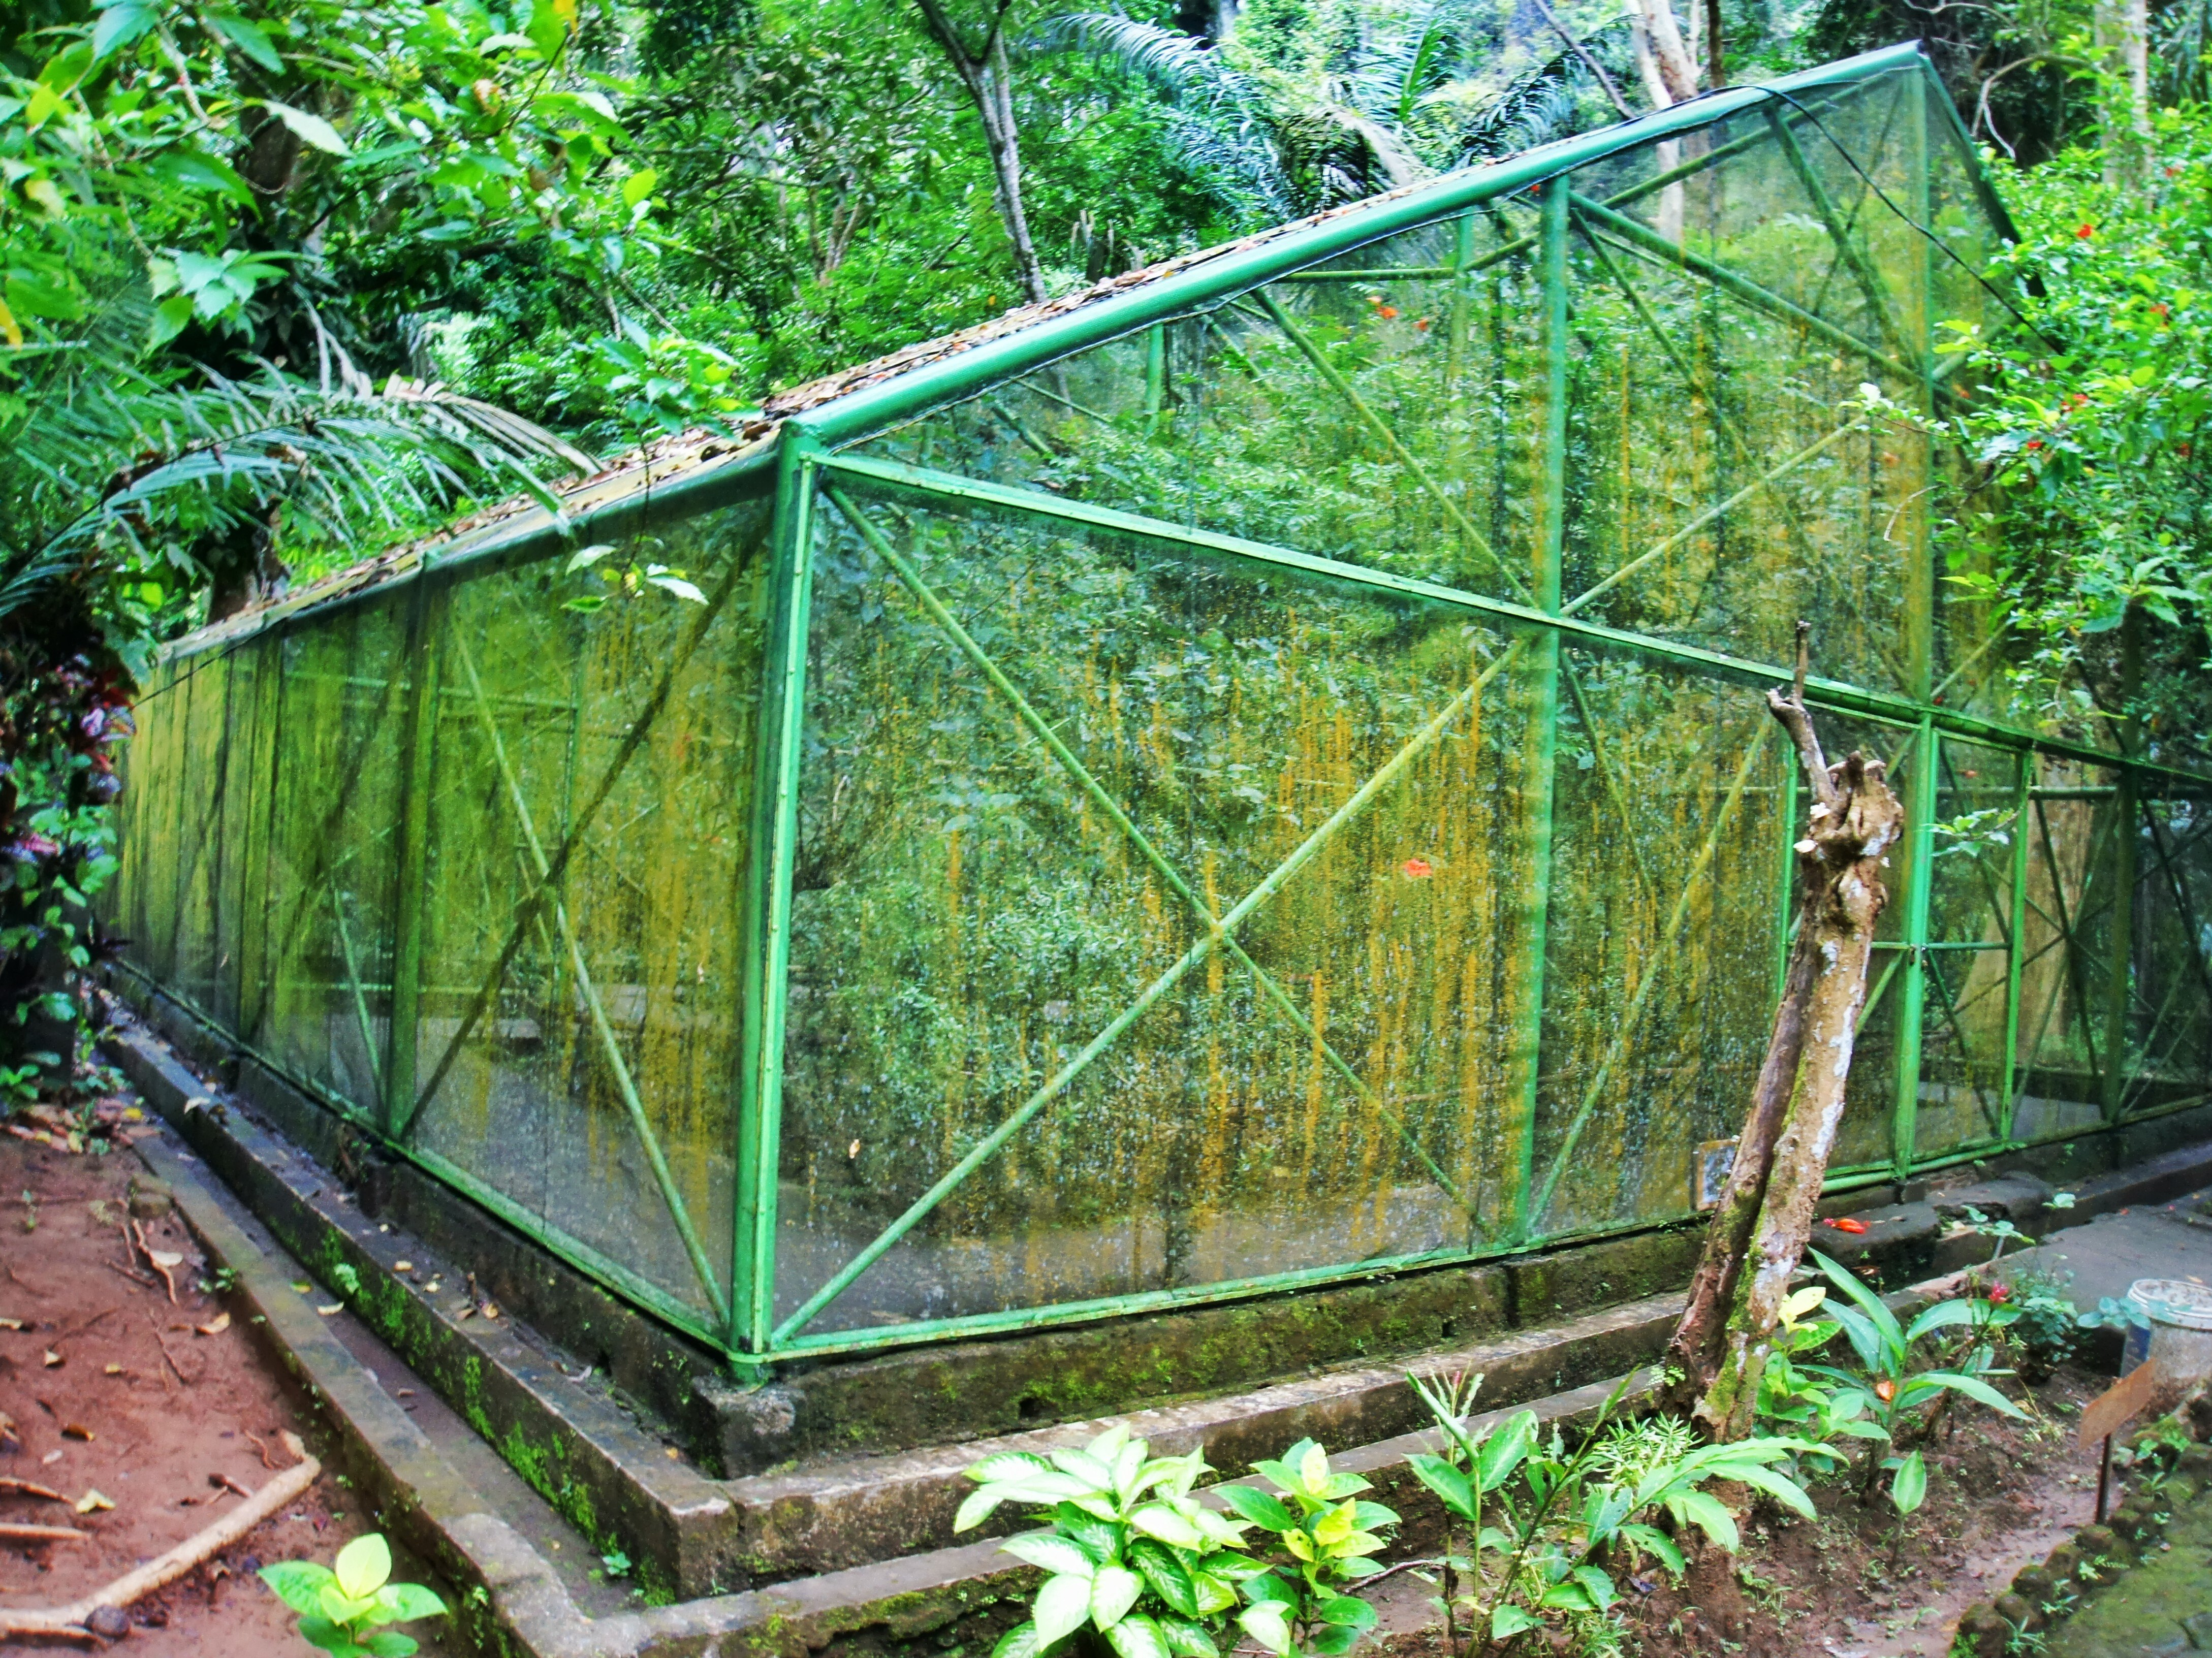 The solitary cage housing a handful of live butterflies in the Butterfly Museum.